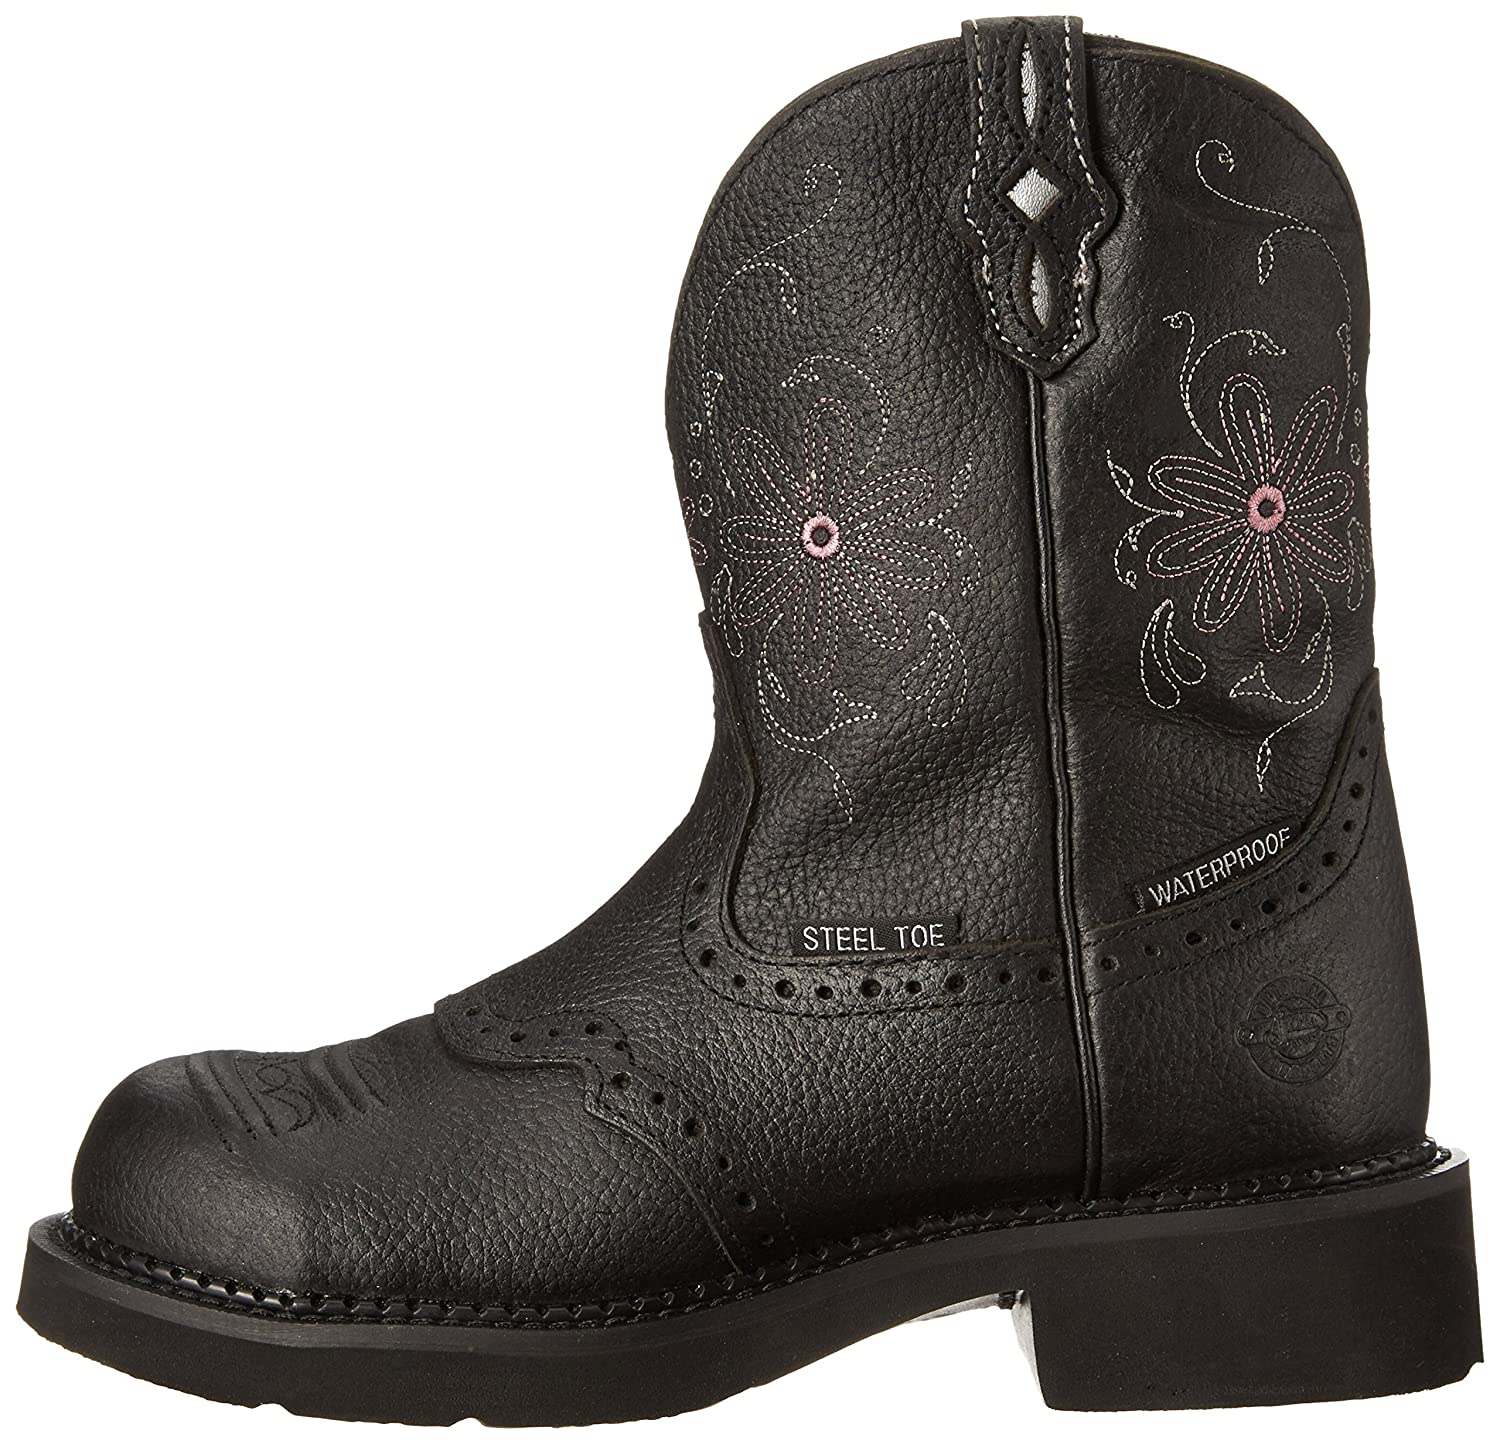 Justin Boots Women's Gypsy Collection Round-Toe Western Boot - 8 inch B00A6DRM8E 6.5 B(M) US|Black Pebbled Grain